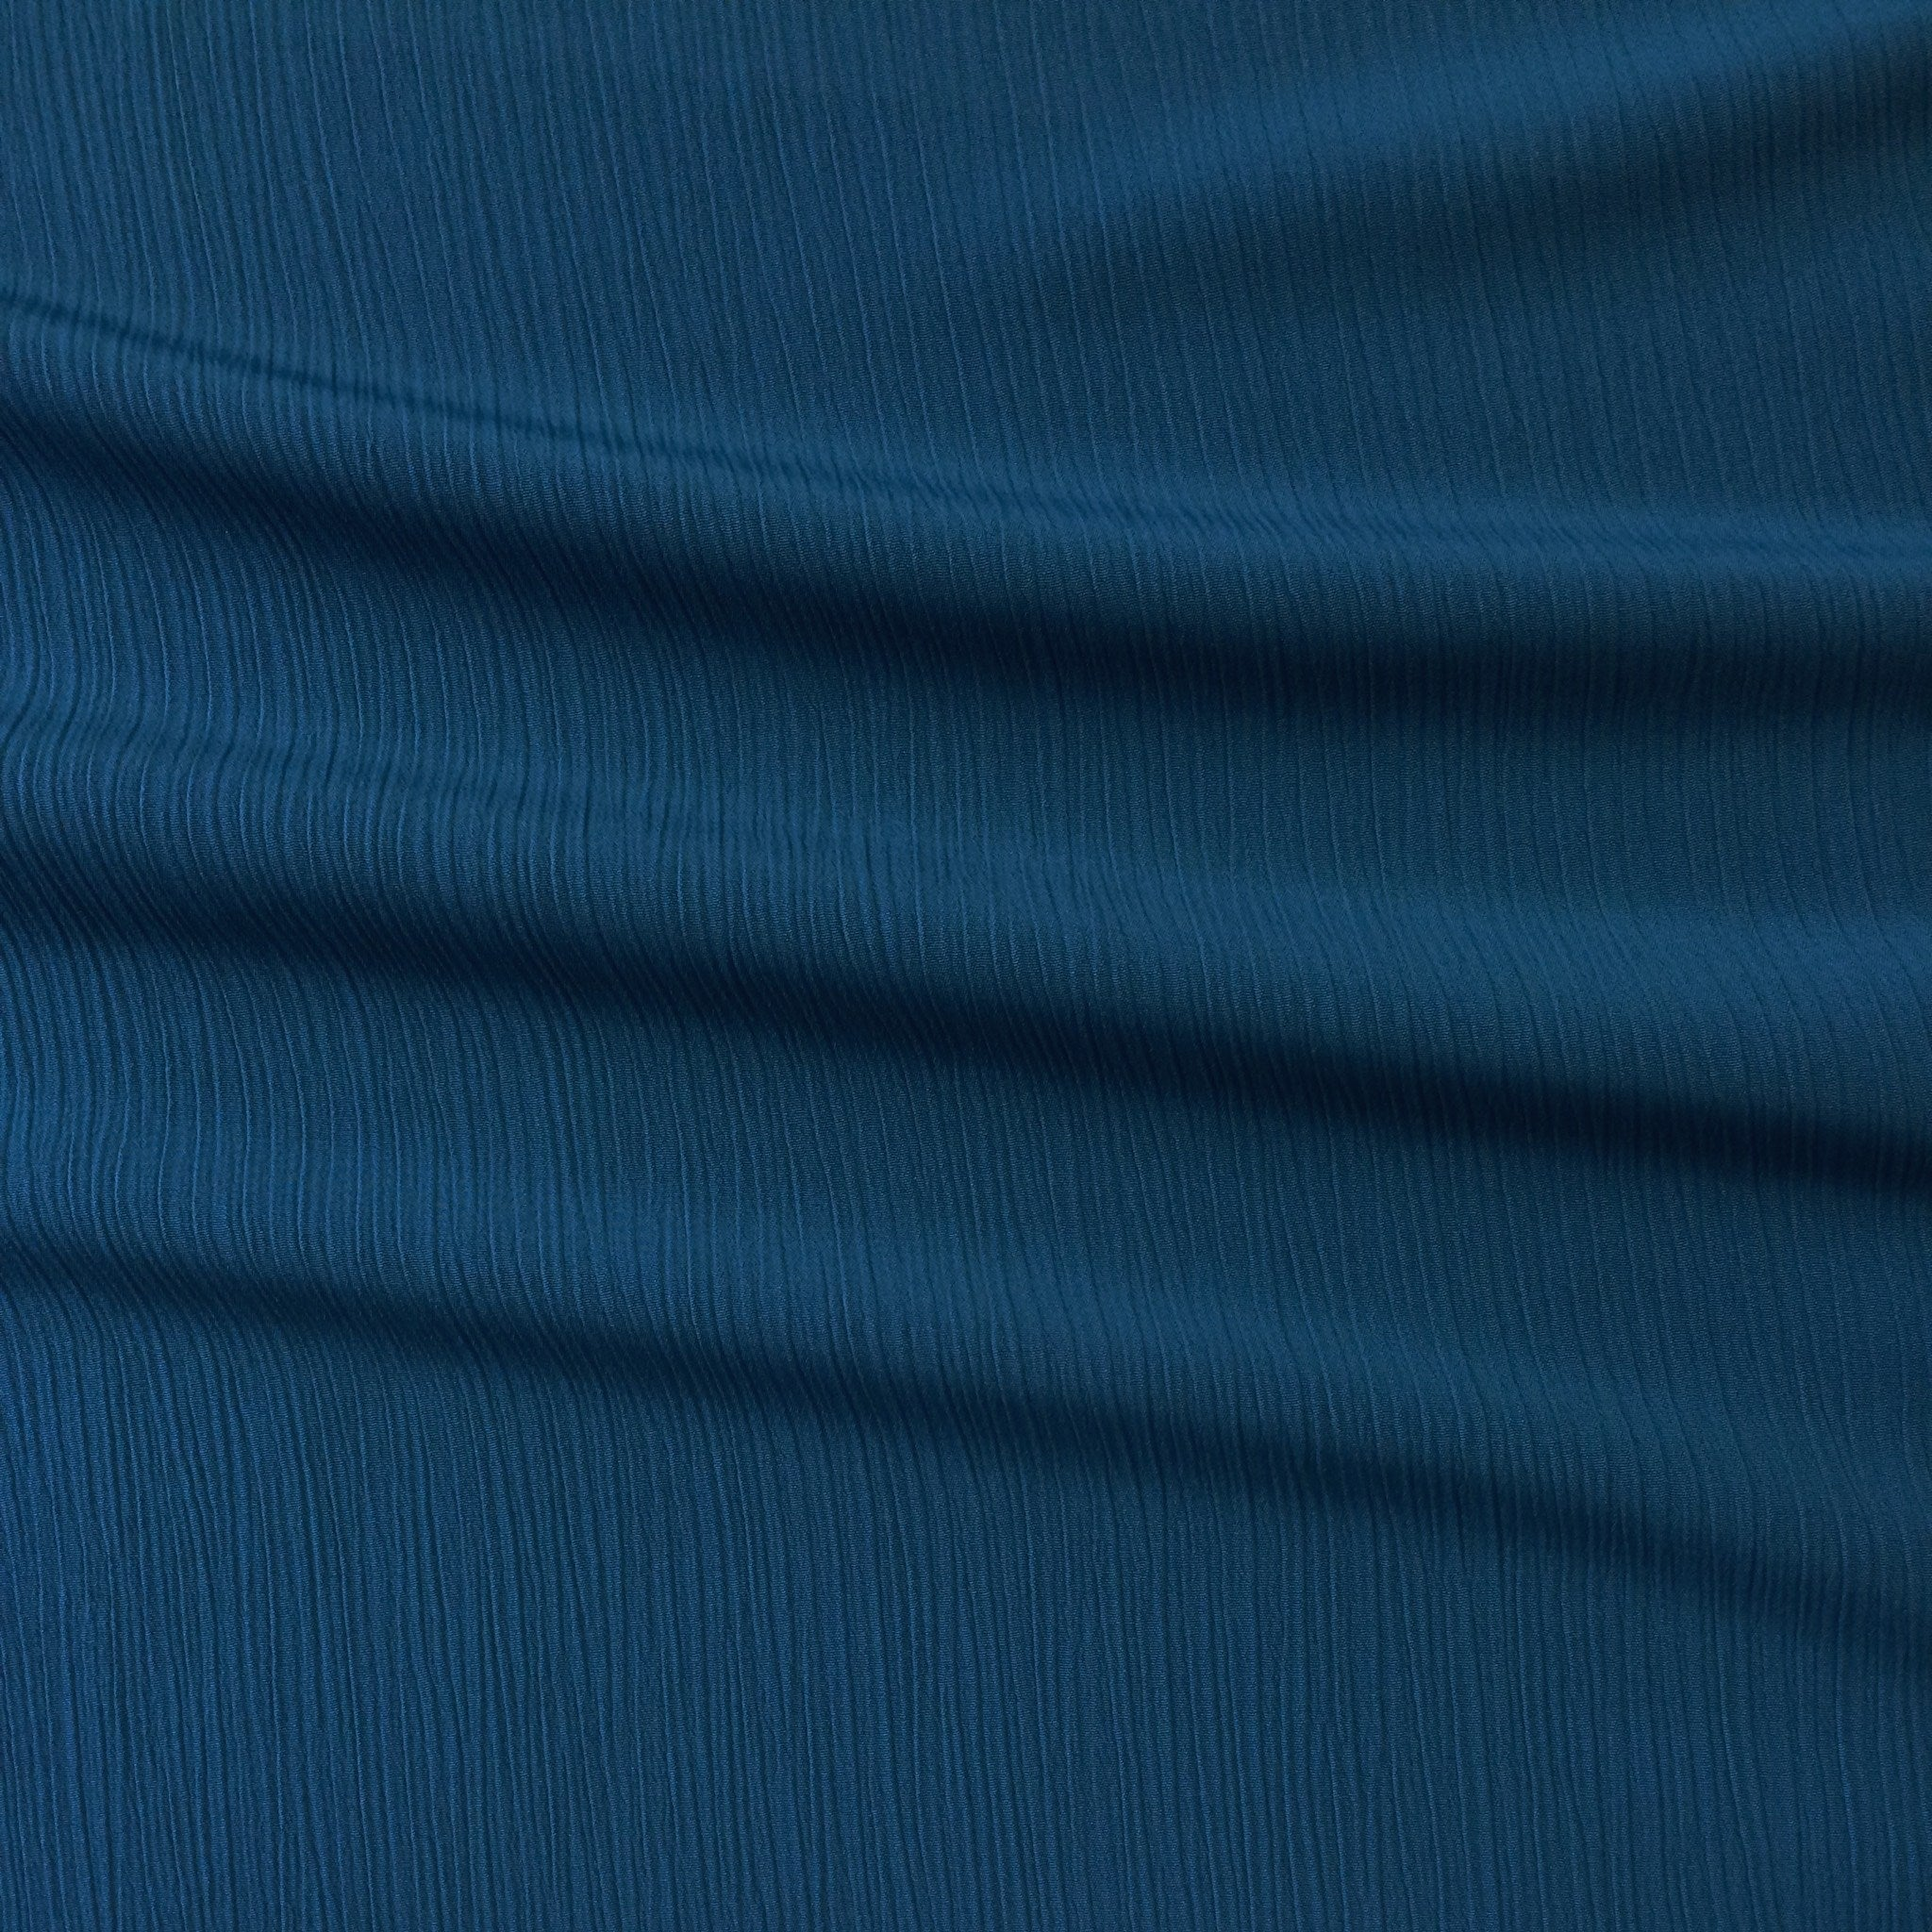 Crinkle Polyester Fabric 3 99 Yard 60 Quot Wide Fabric